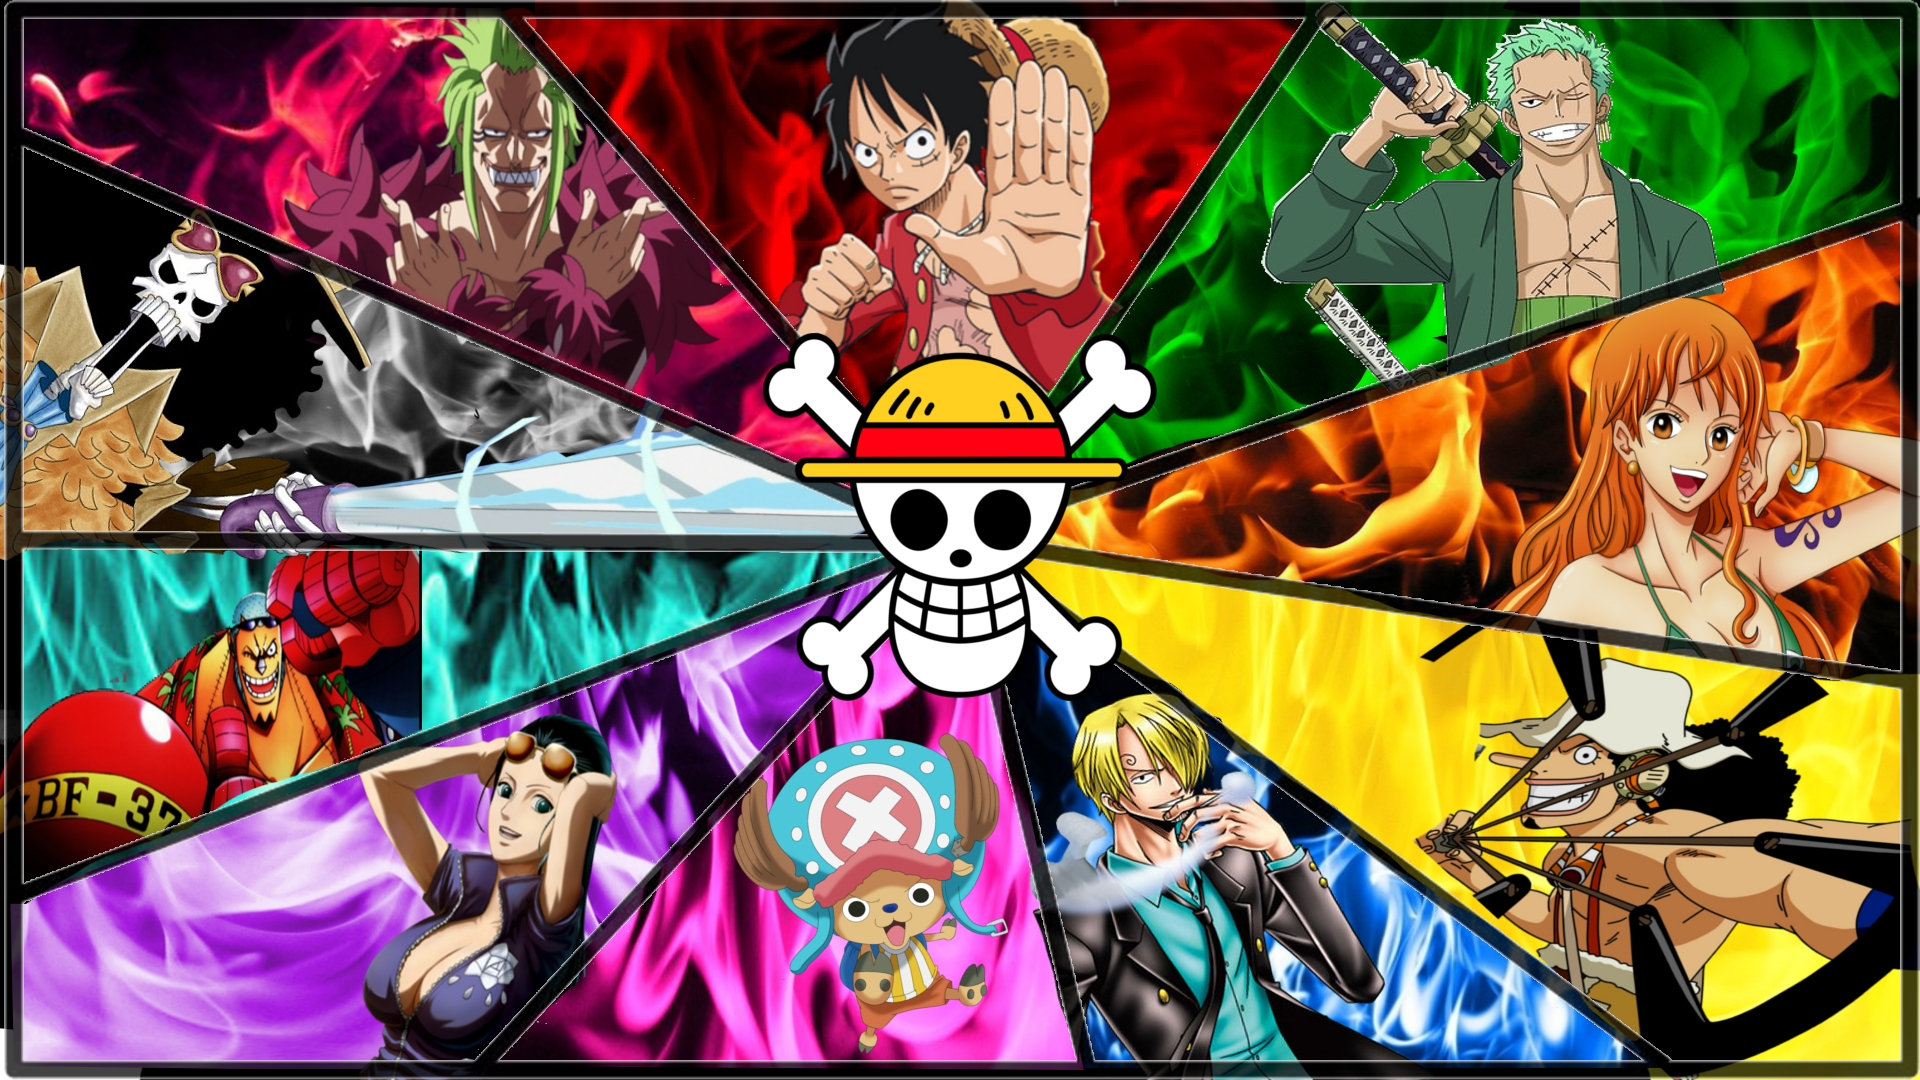 One piece hd wallpaper background image 1920x1080 id 769825 wallpaper abyss - One piece wallpaper hd ...